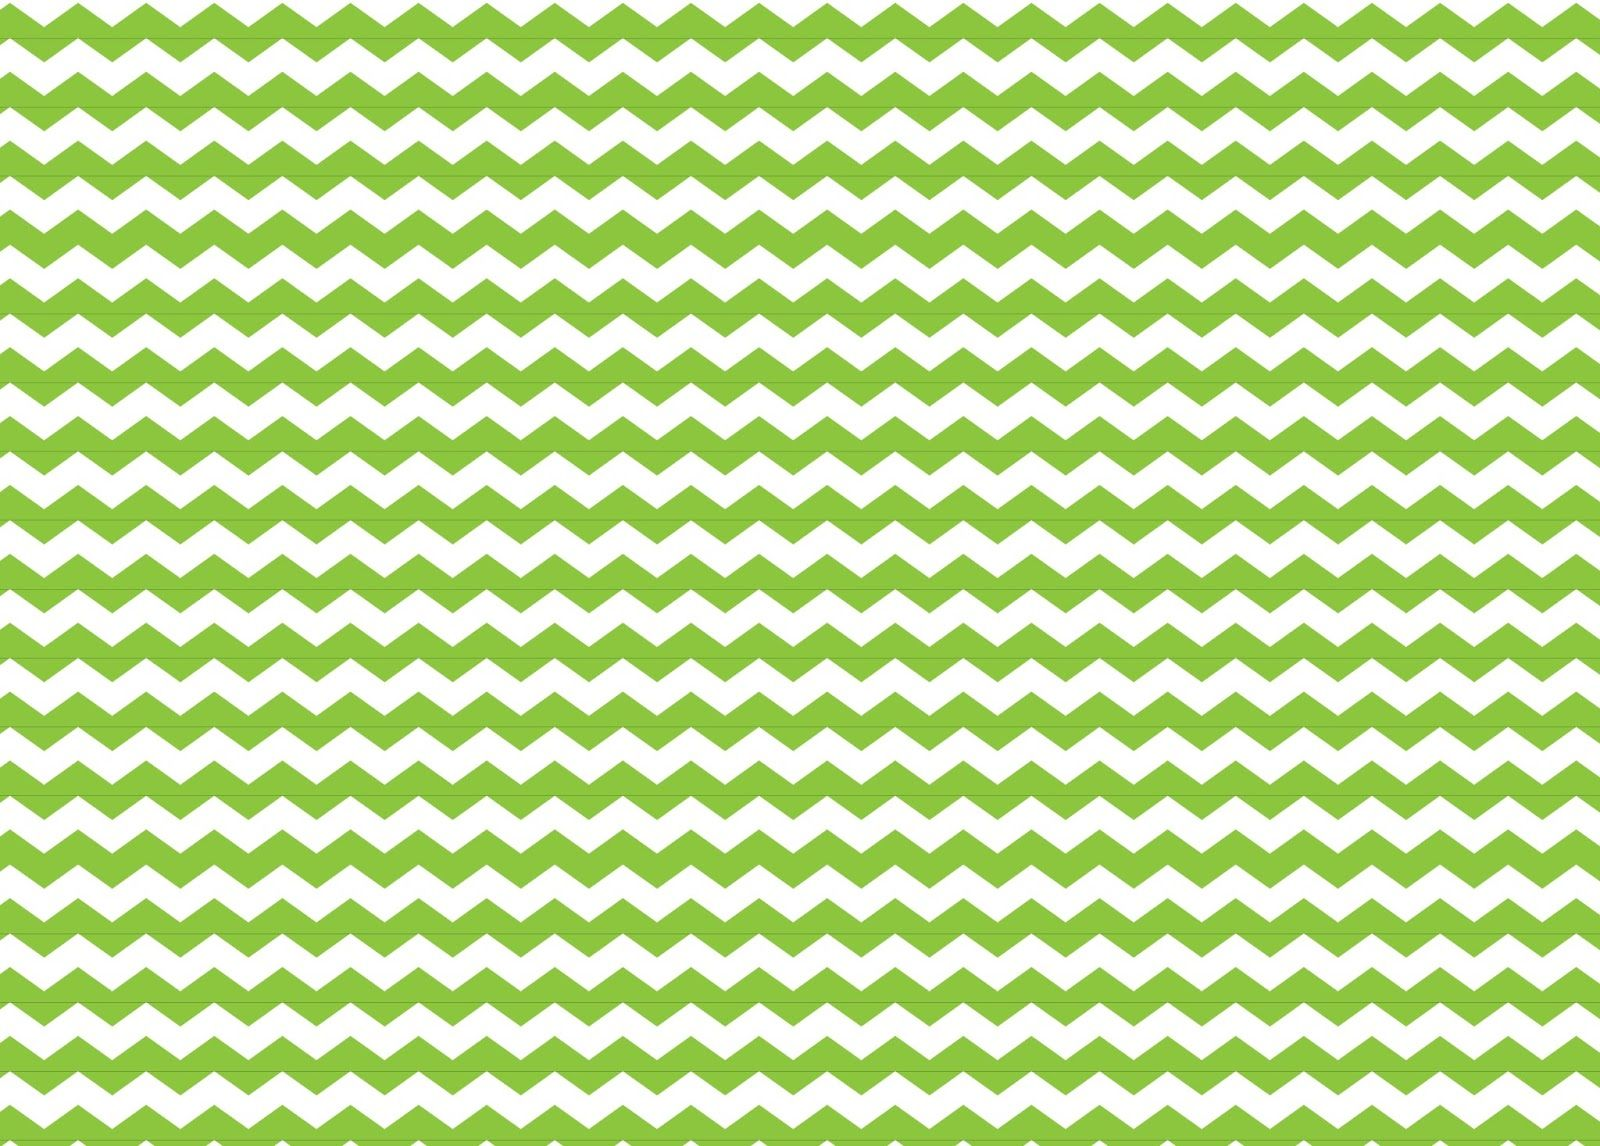 St Patrick/'s Day Chevrons Green White Cotton Quilt Fabric BTY